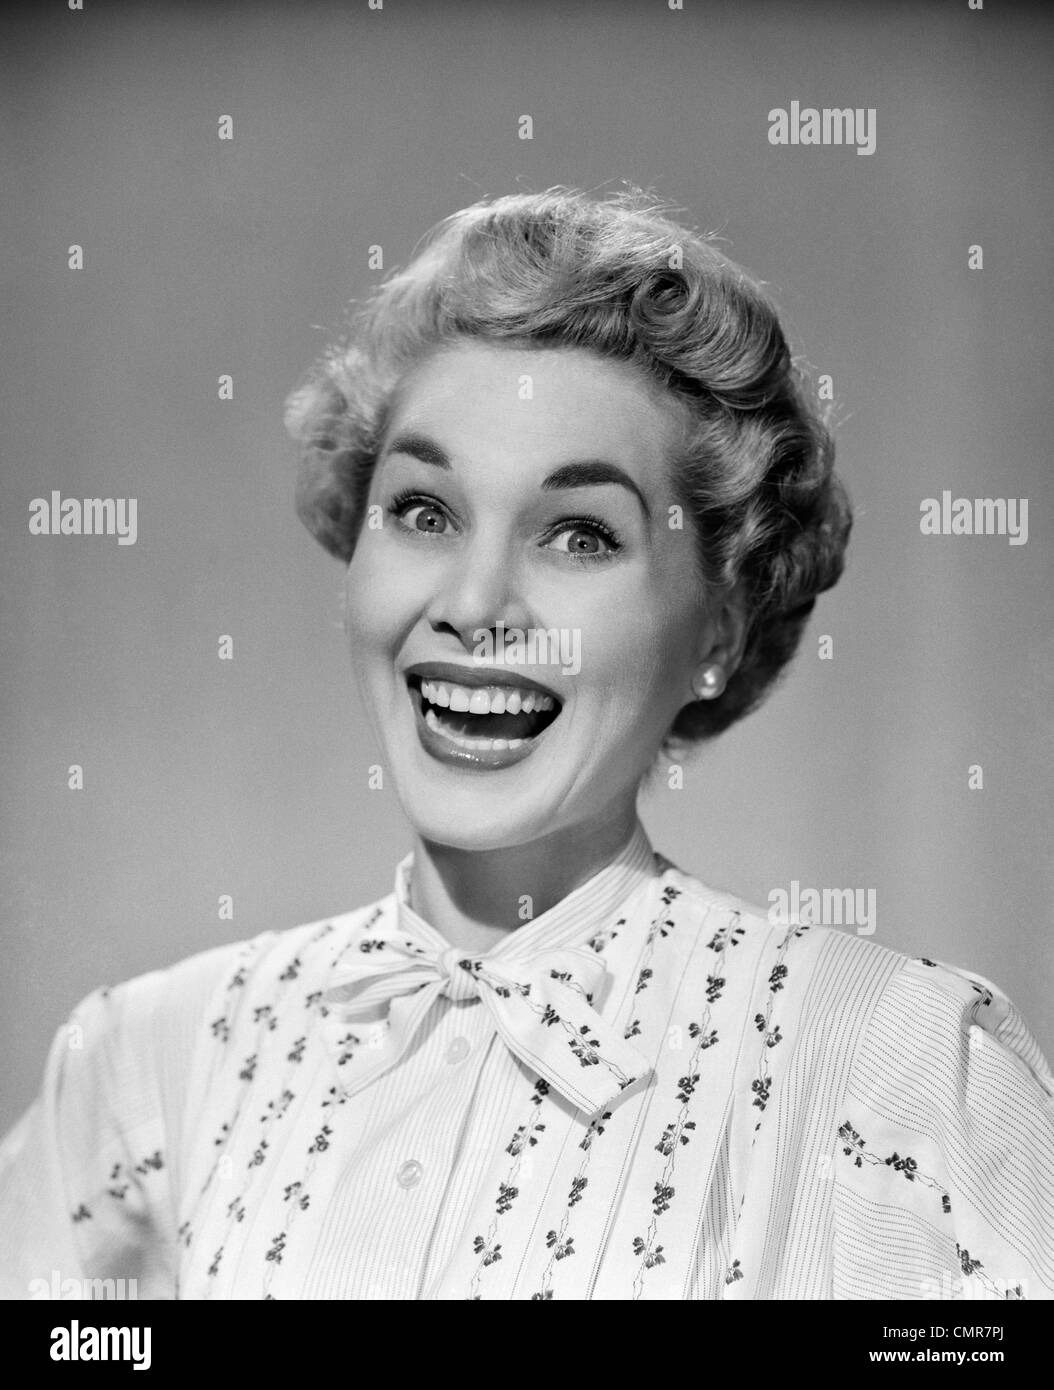 1950s PORTRAIT OF BLOND WOMAN EYES WIDE OPEN BIG SMILE HAPPY INDOOR LOOKING AT CAMERA - Stock Image